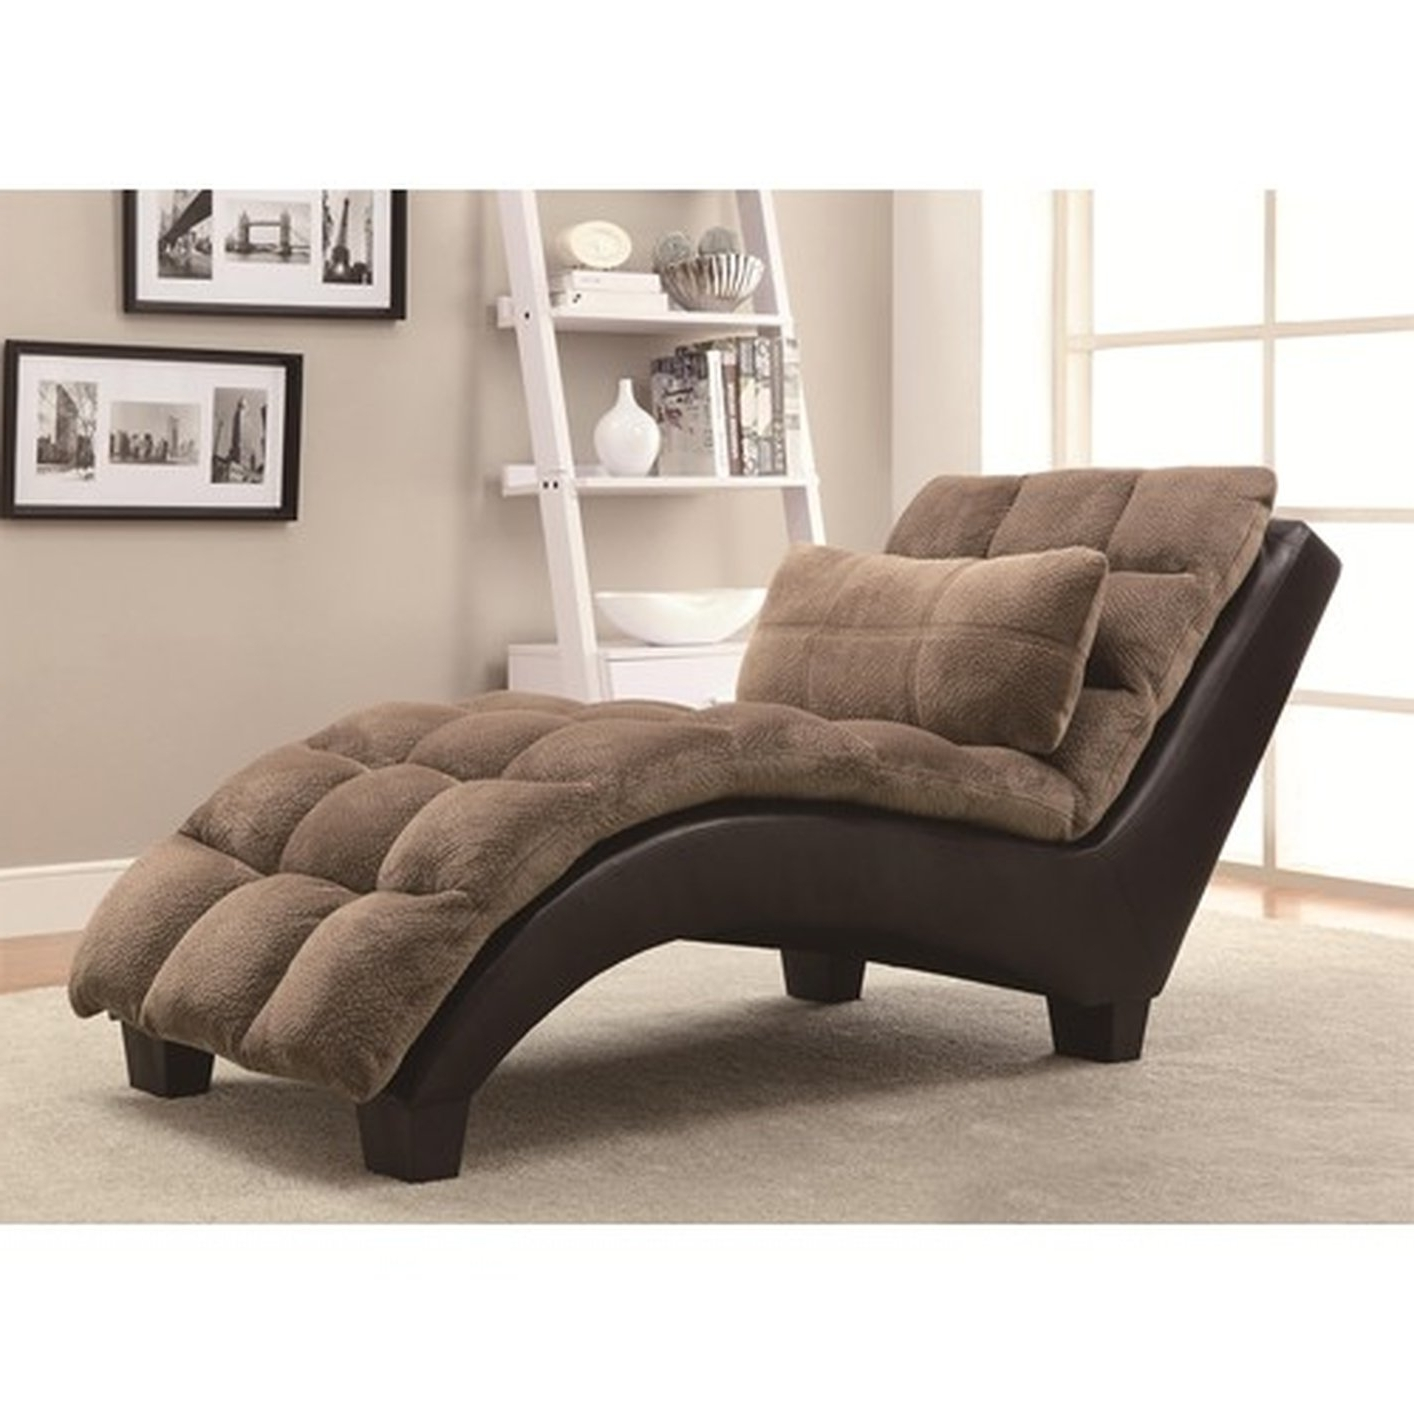 Most Popular Brown Fabric Chaise Lounge – Steal A Sofa Furniture Outlet Los Inside Brown Chaise Lounges (View 7 of 15)